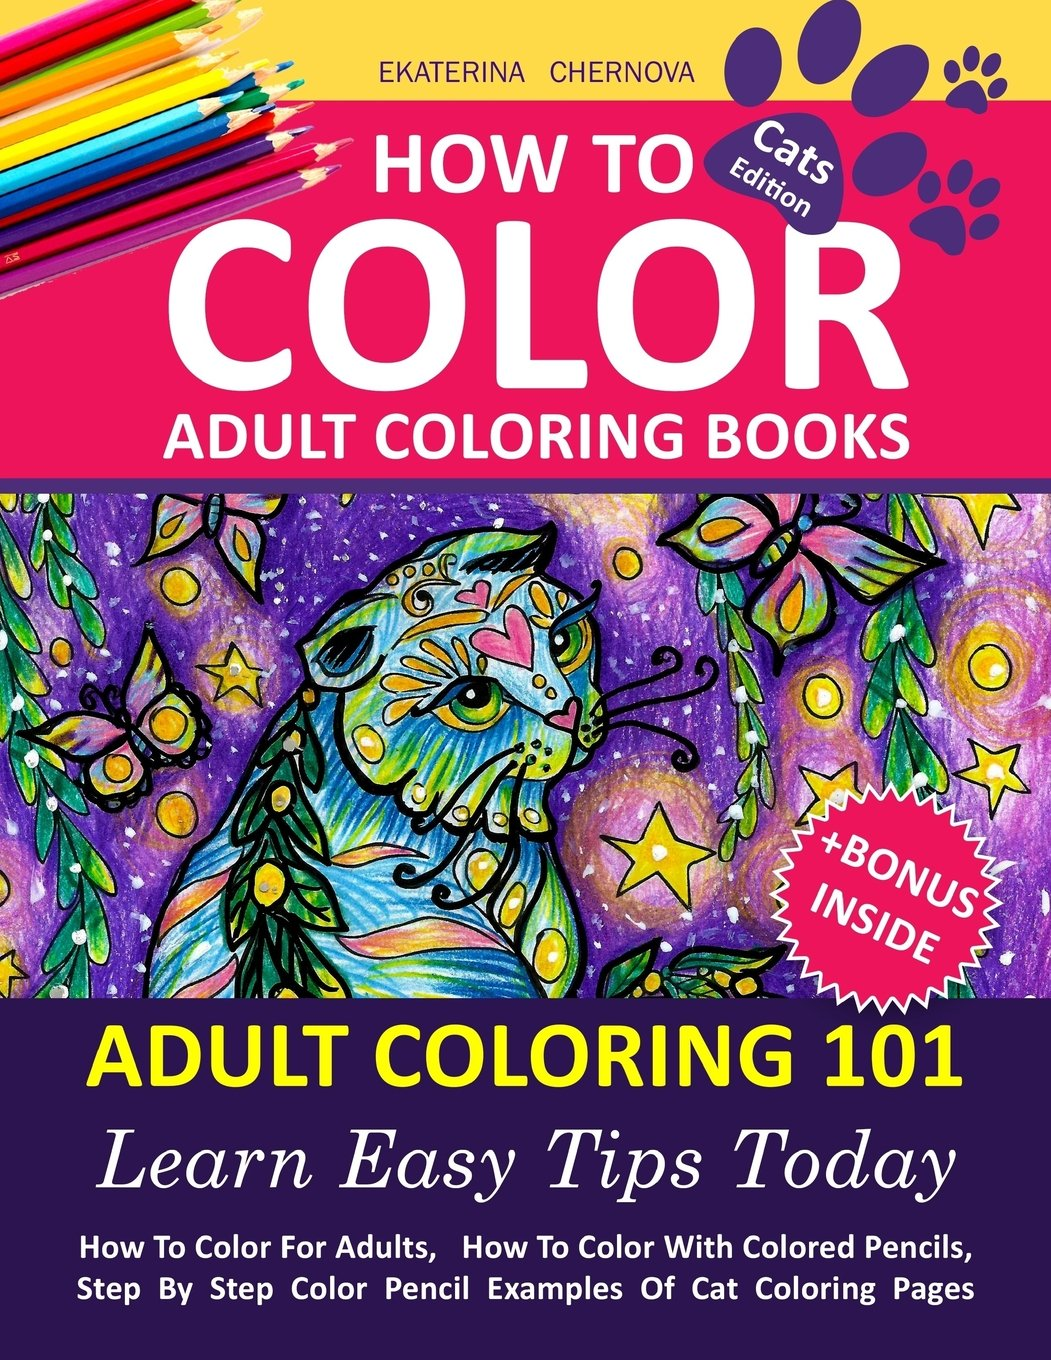 Coloring adults books - How To Color Adult Coloring Books Adult Coloring 101 Learn Easy Tips Today How To Color For Adults How To Color With Colored Pencils Step By